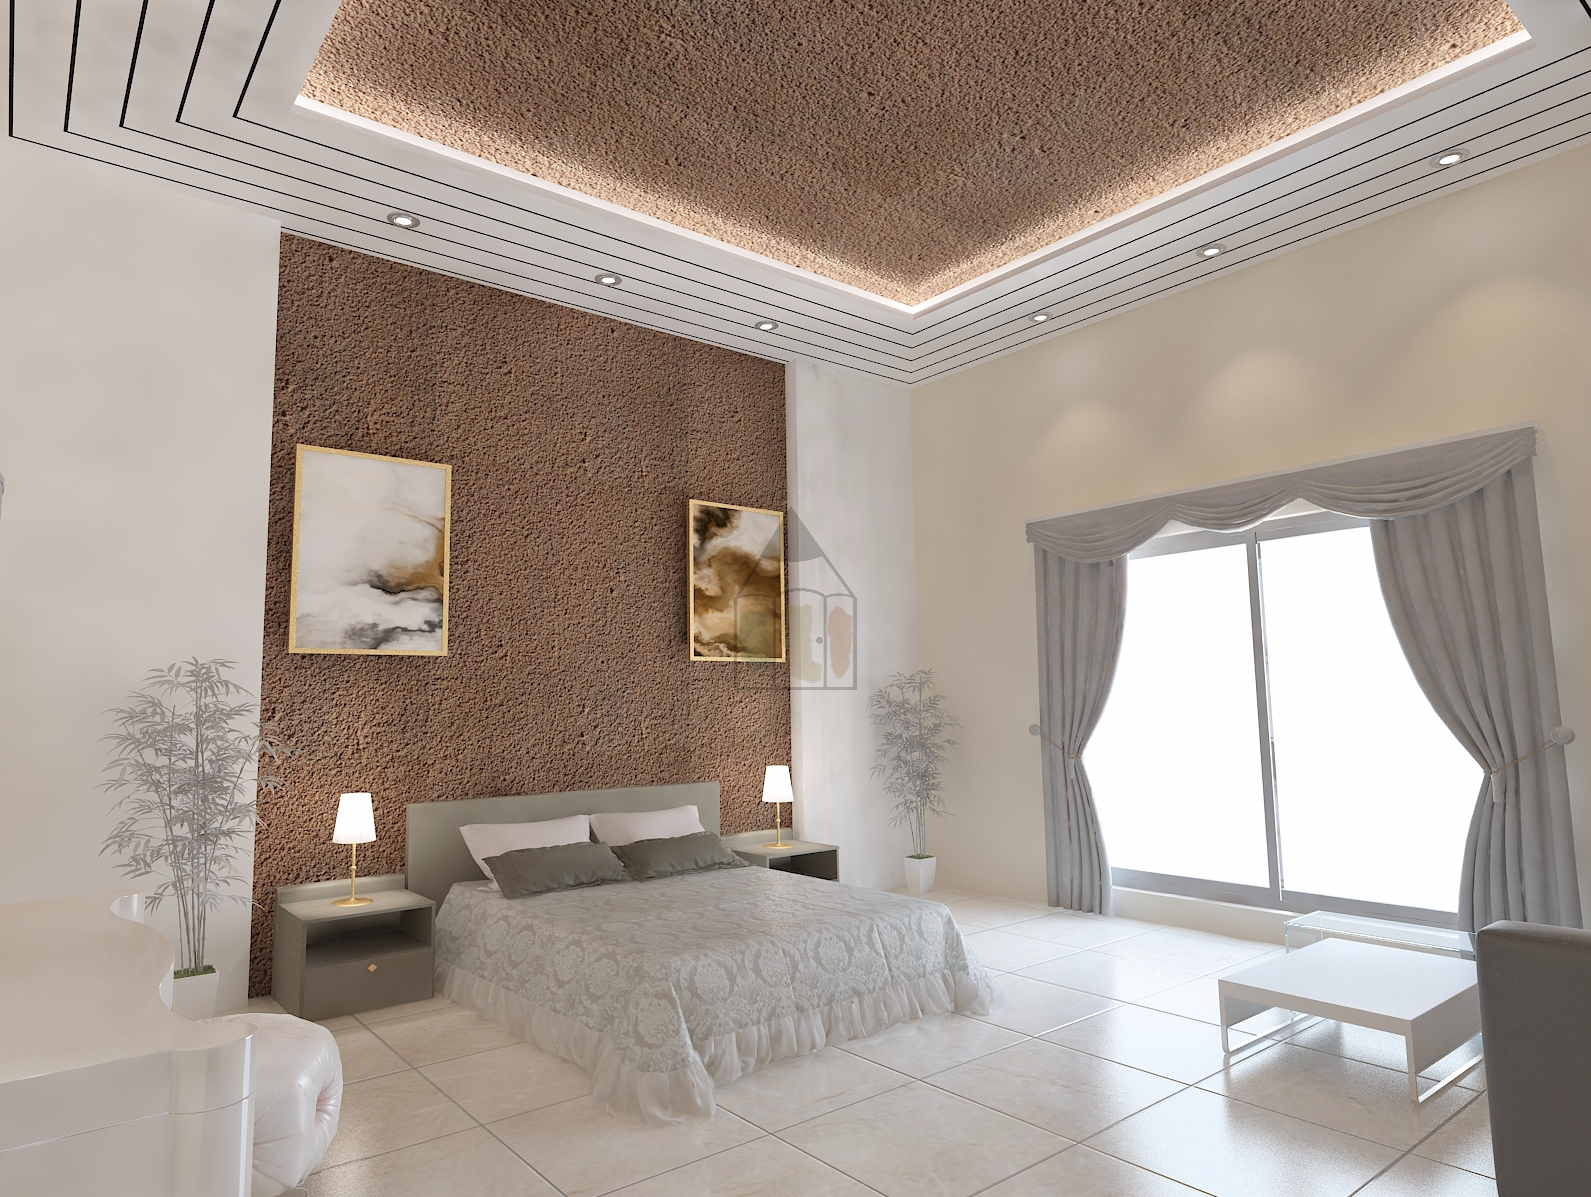 ceiling design of bedroom in islamabad with complete decor or